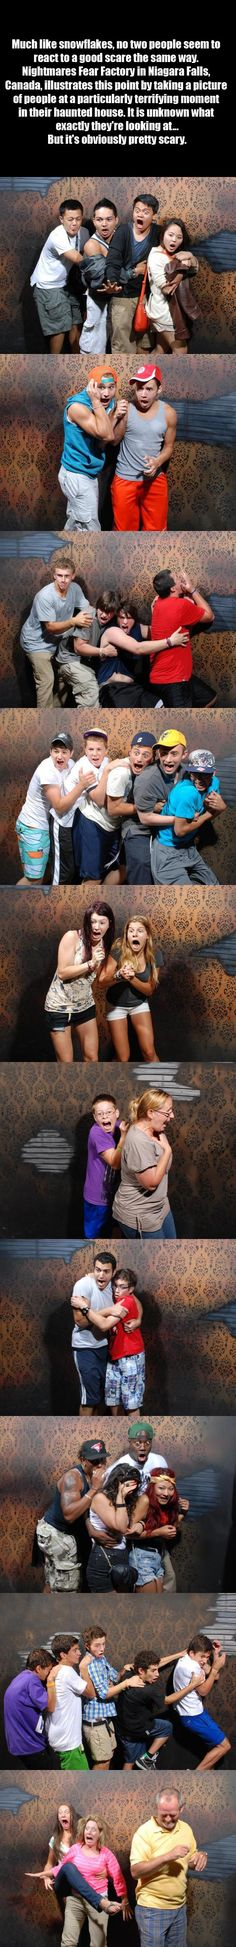 hilarious haunted house scares | from Nightmares Fear Factory @ Niagara Falls